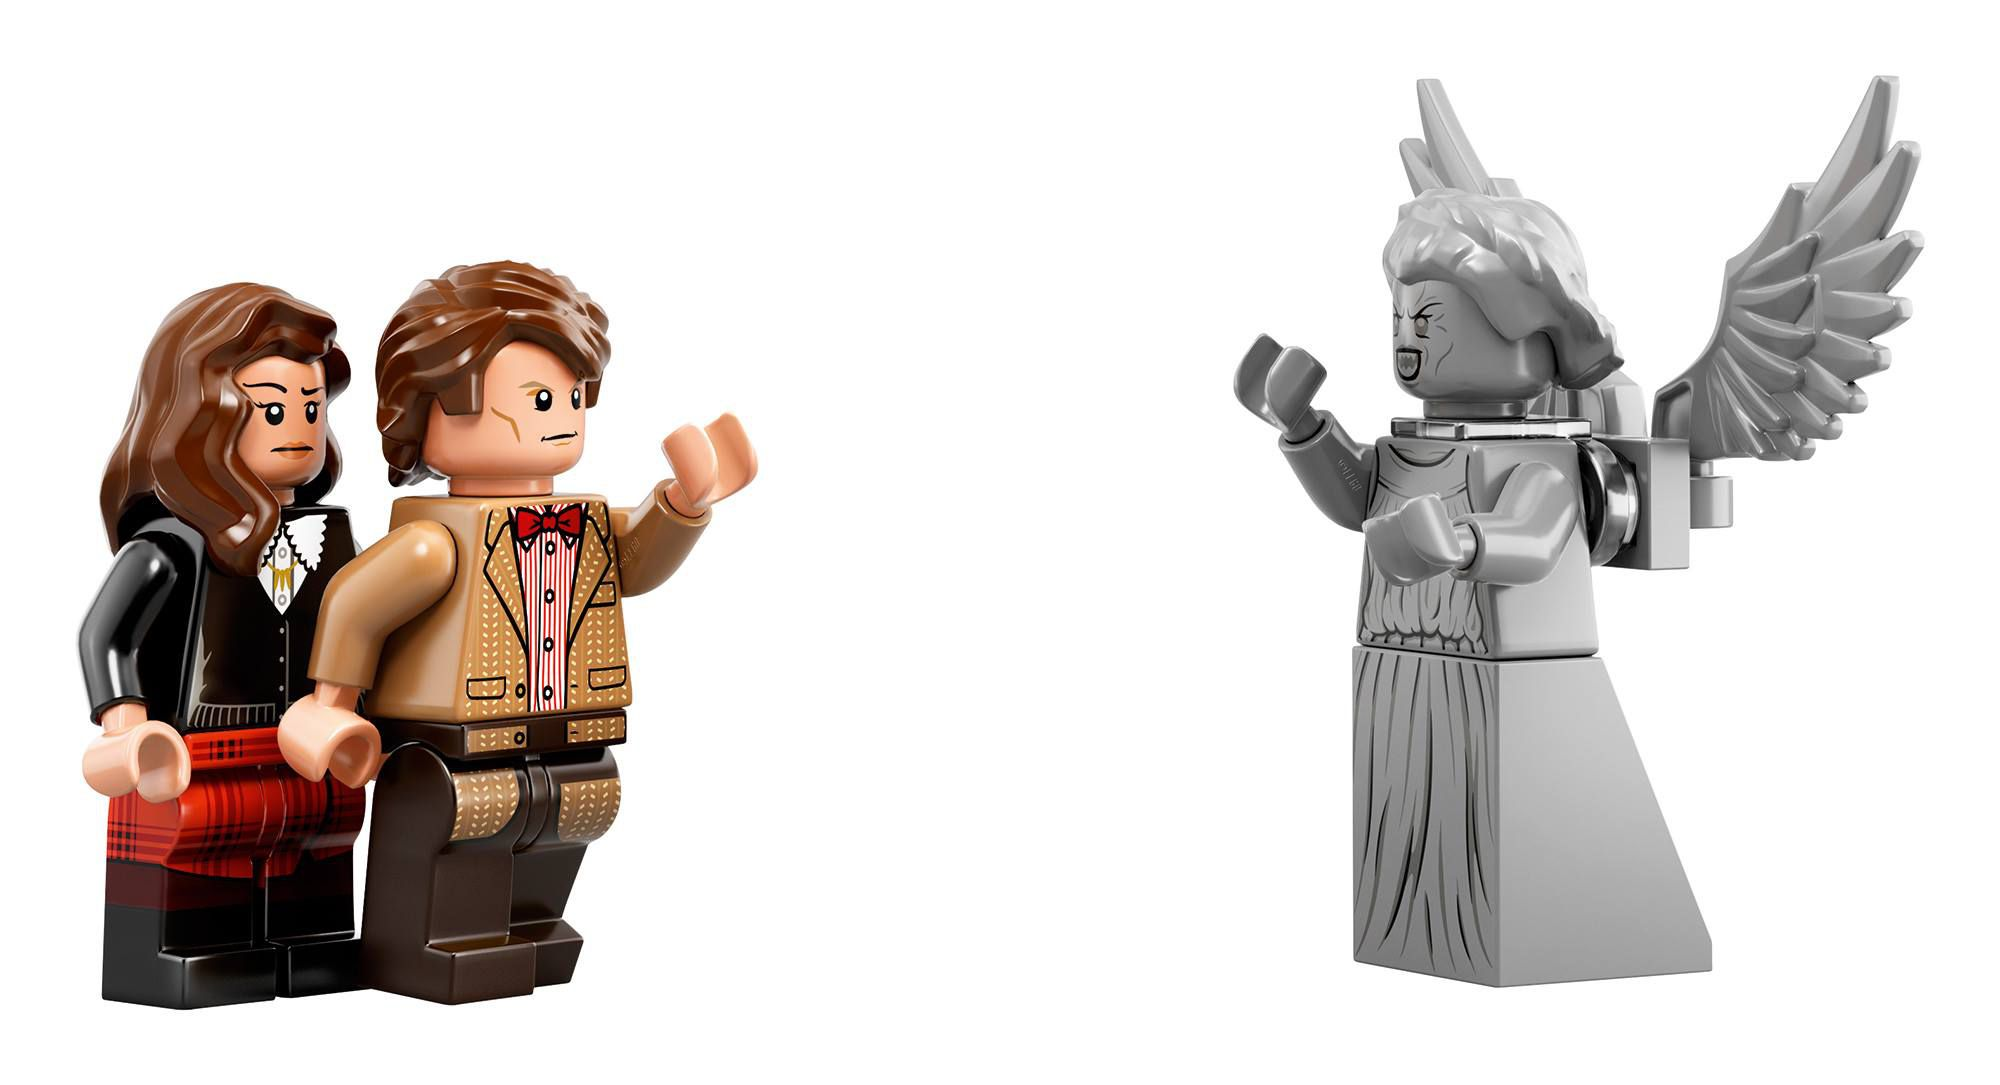 LEGO Ideas 21304 Doctor Who 21304-1_doctor_who_img02.jpg